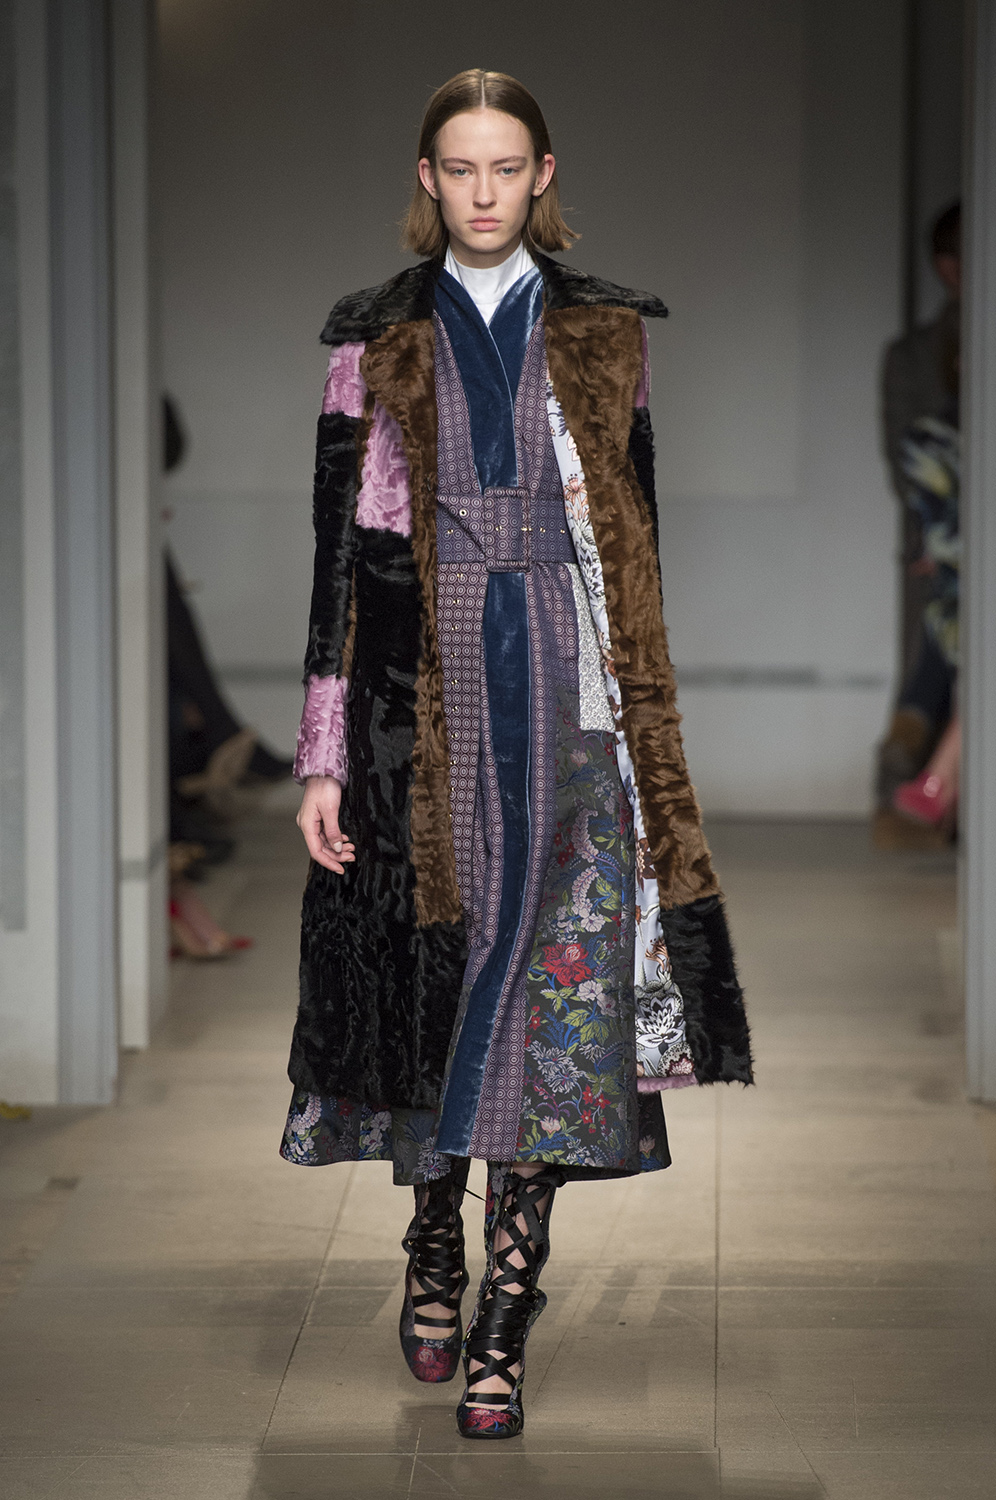 Erdem's Tale of Two Grandmothers for Fall/Winter 2017